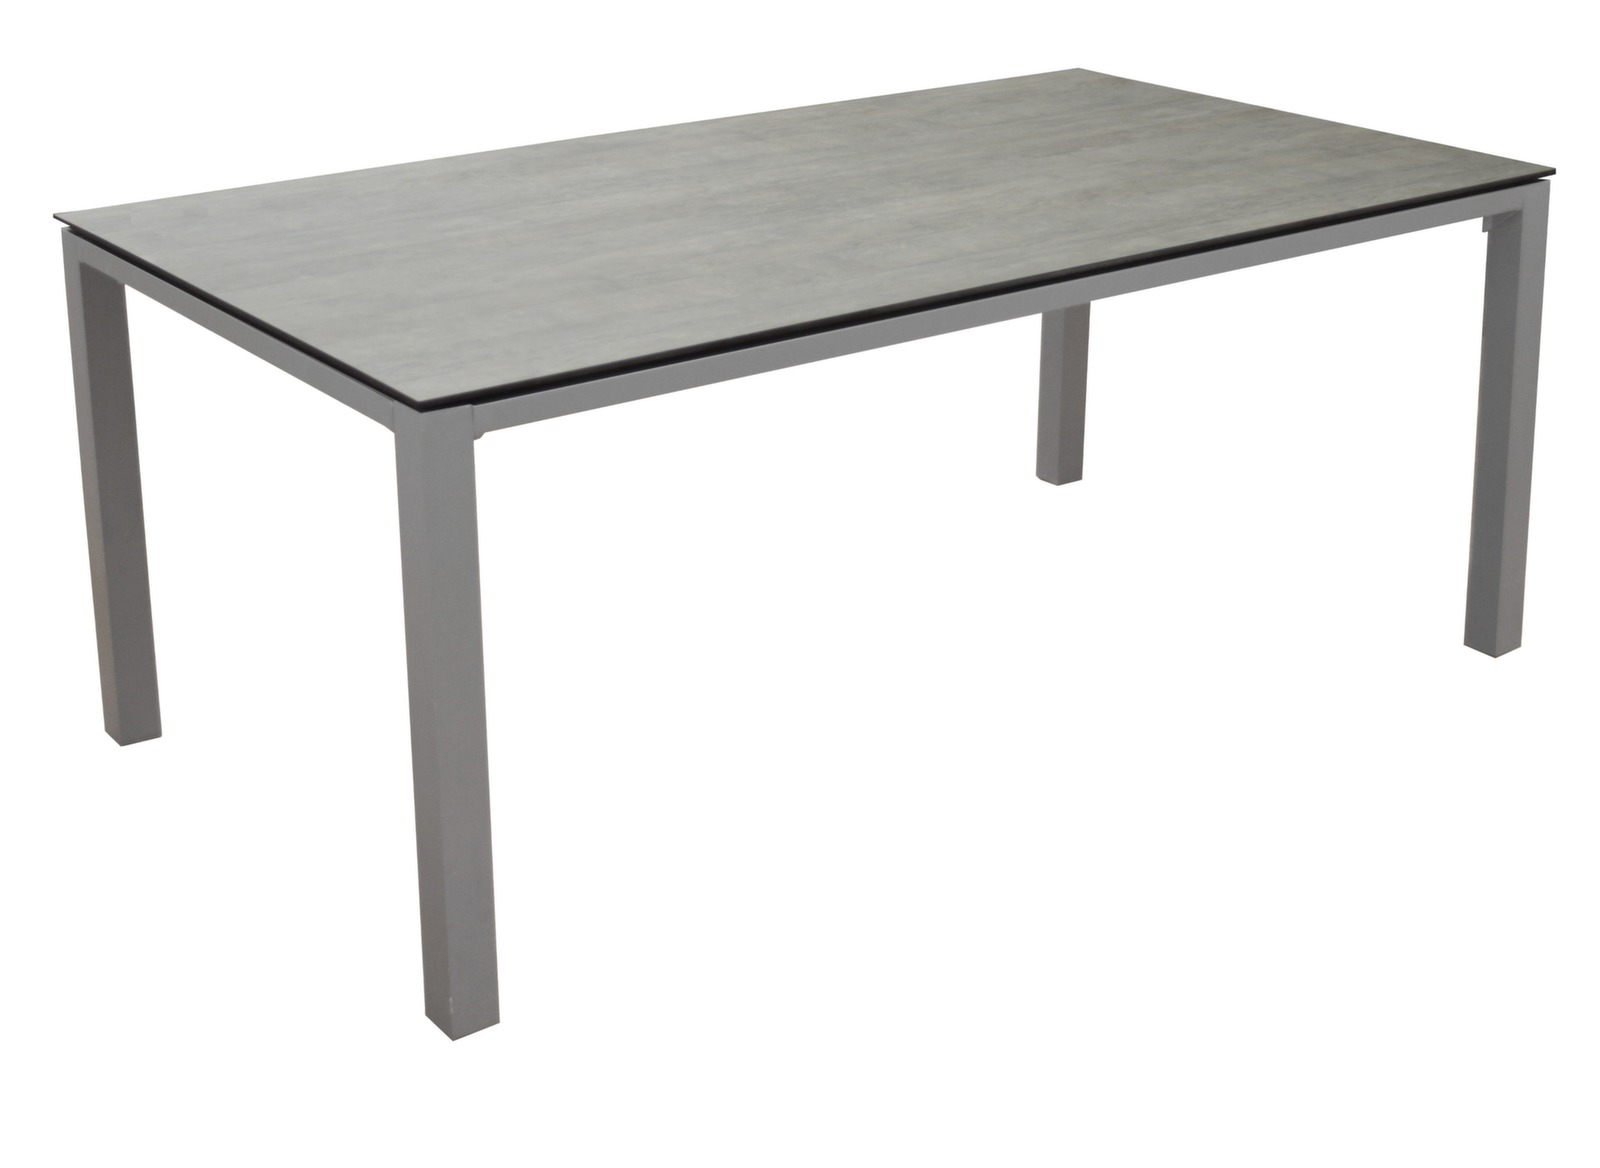 Table Stoneo 180 cm plateau Trespa®